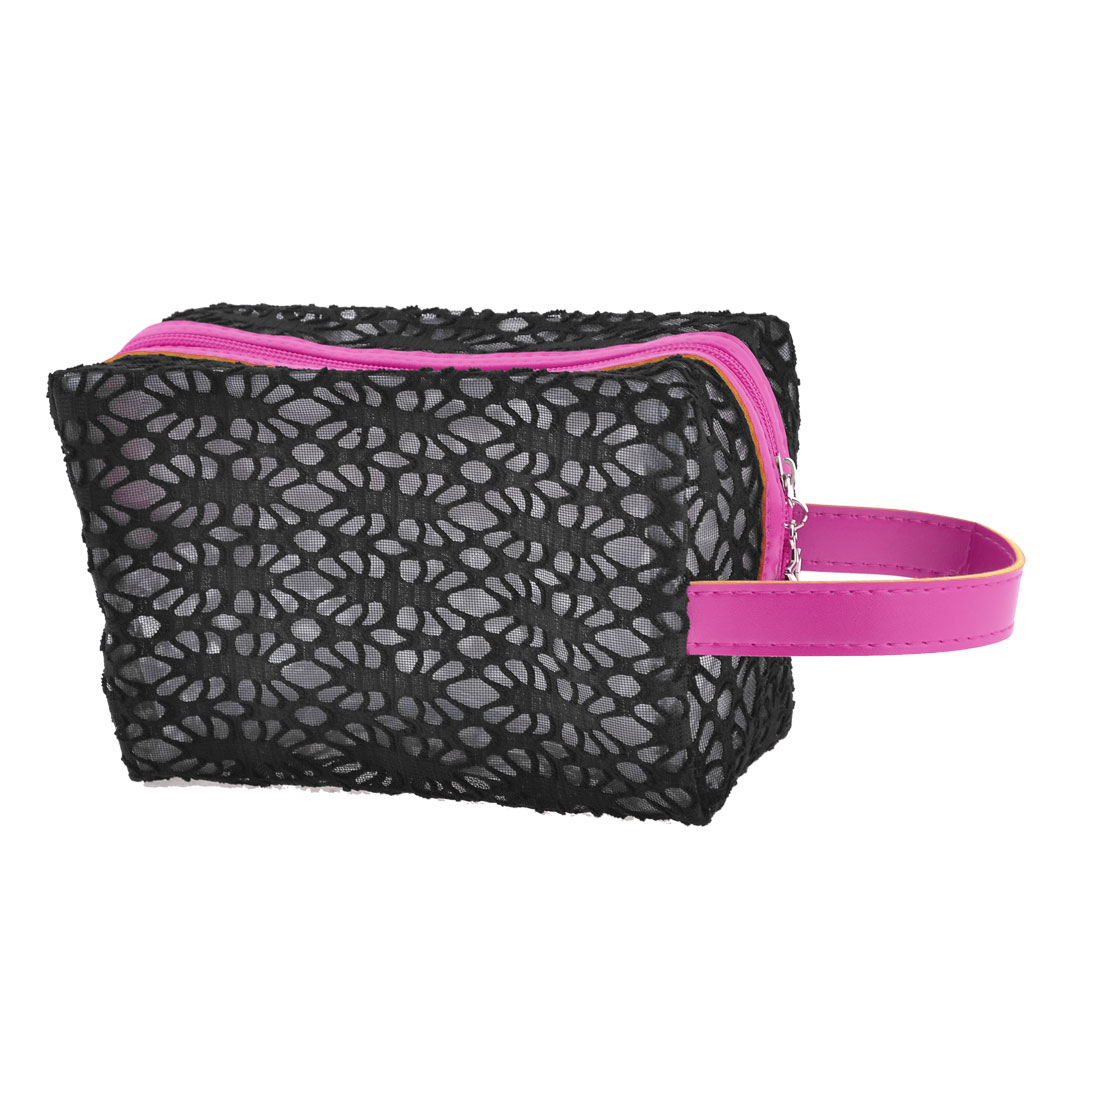 Women Black Hollow Out Mesh Design Cosmetic Bag Pouch Holder w Fuchsia Strap